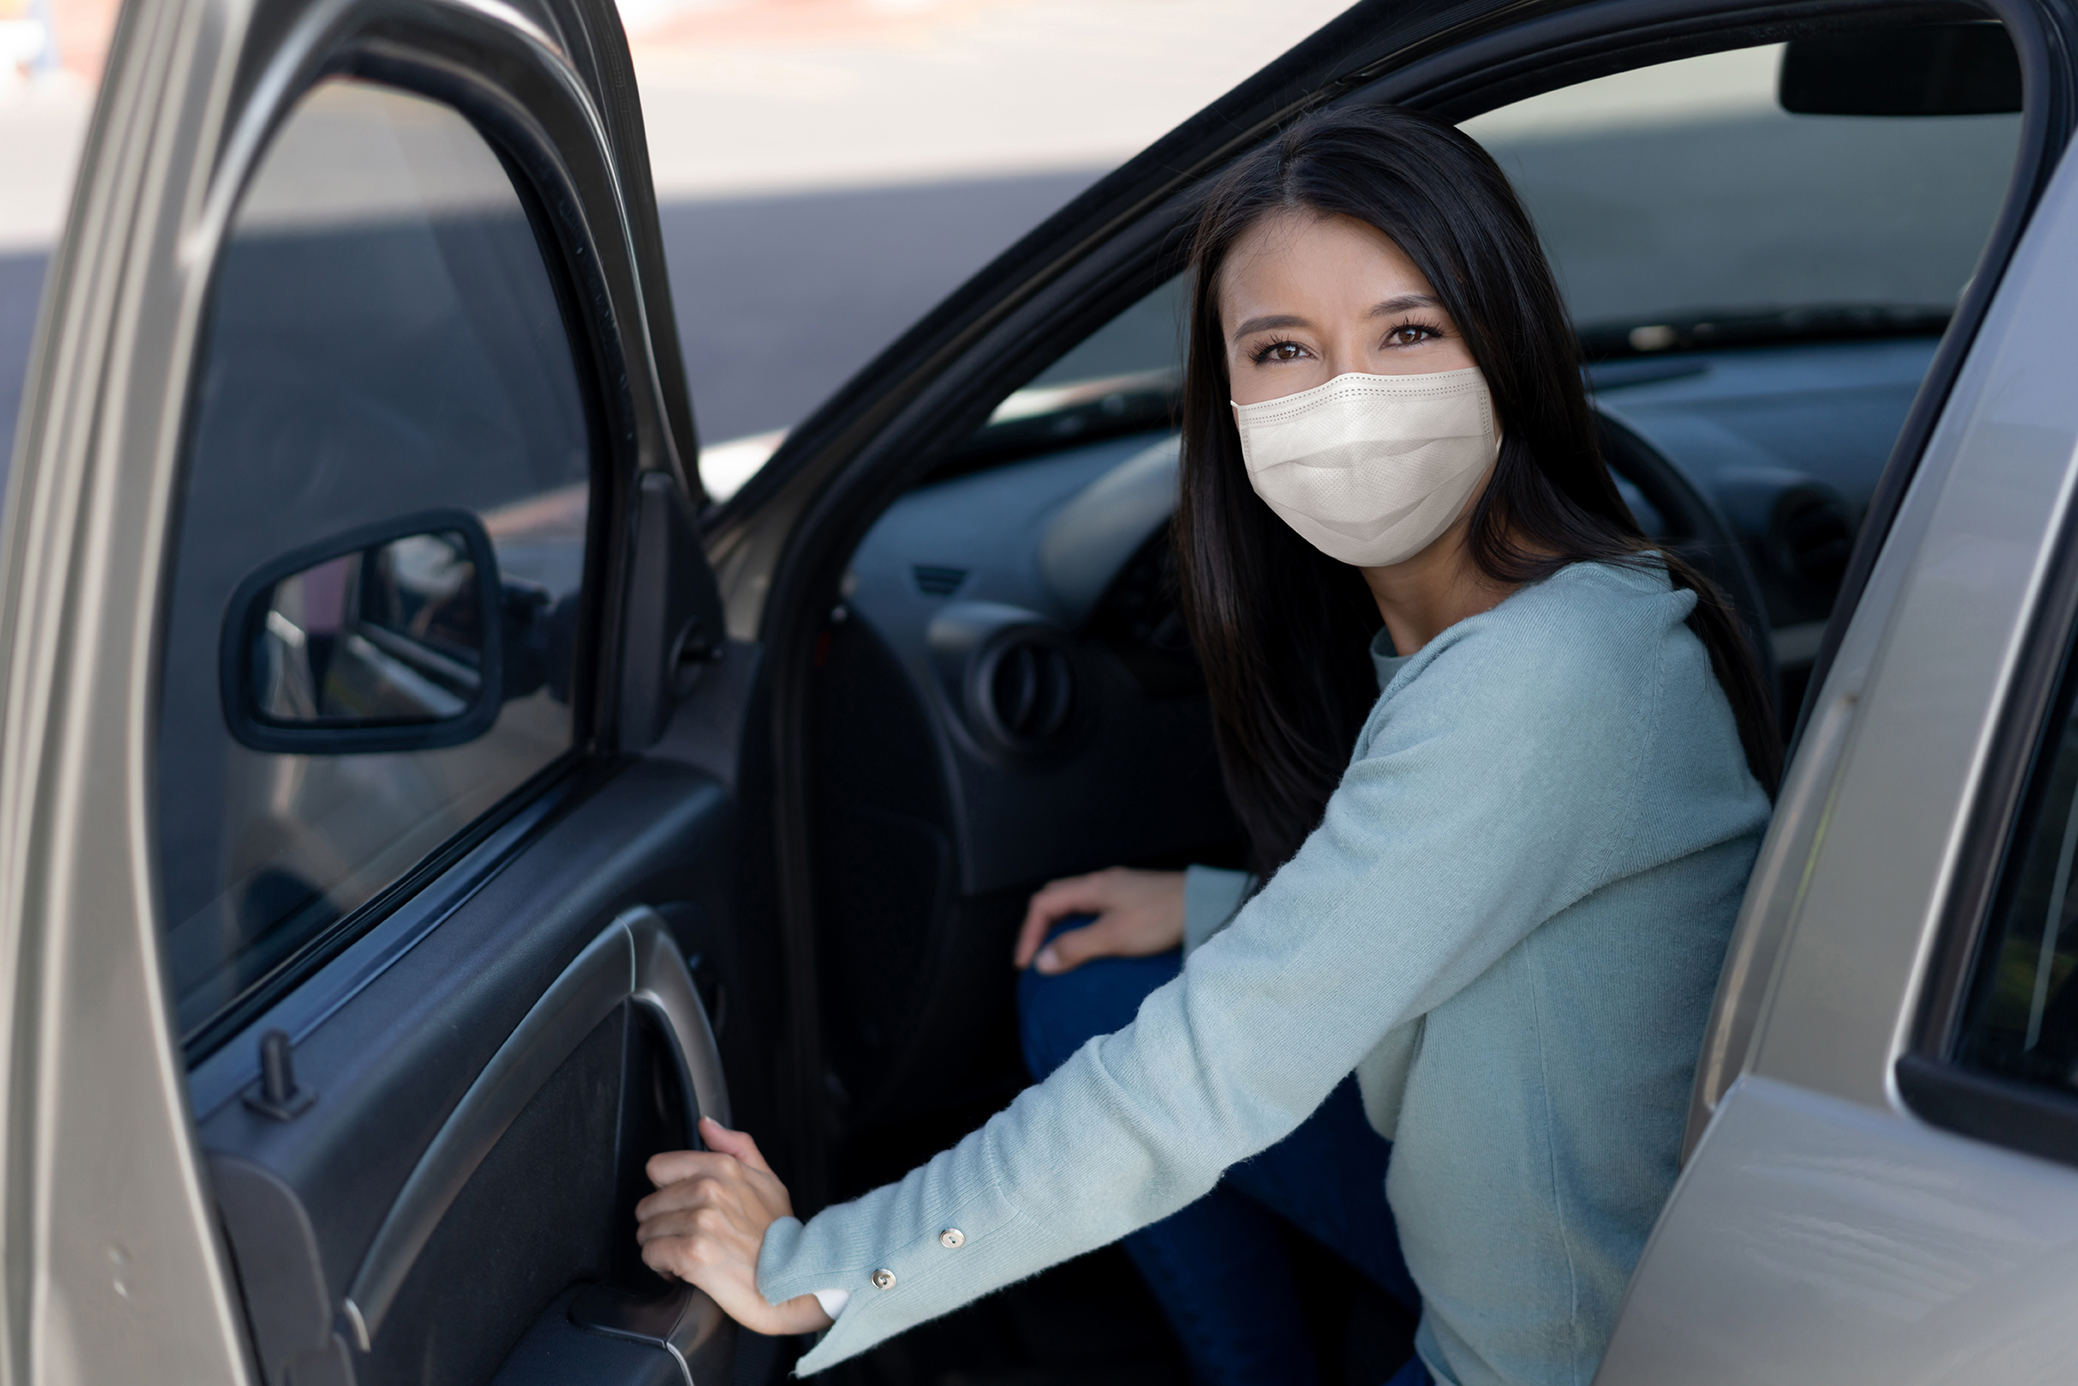 Portrait of a Latin American woman getting in her car wearing a facemask and looking at the camera - COVID-19 pandemic lifestyle